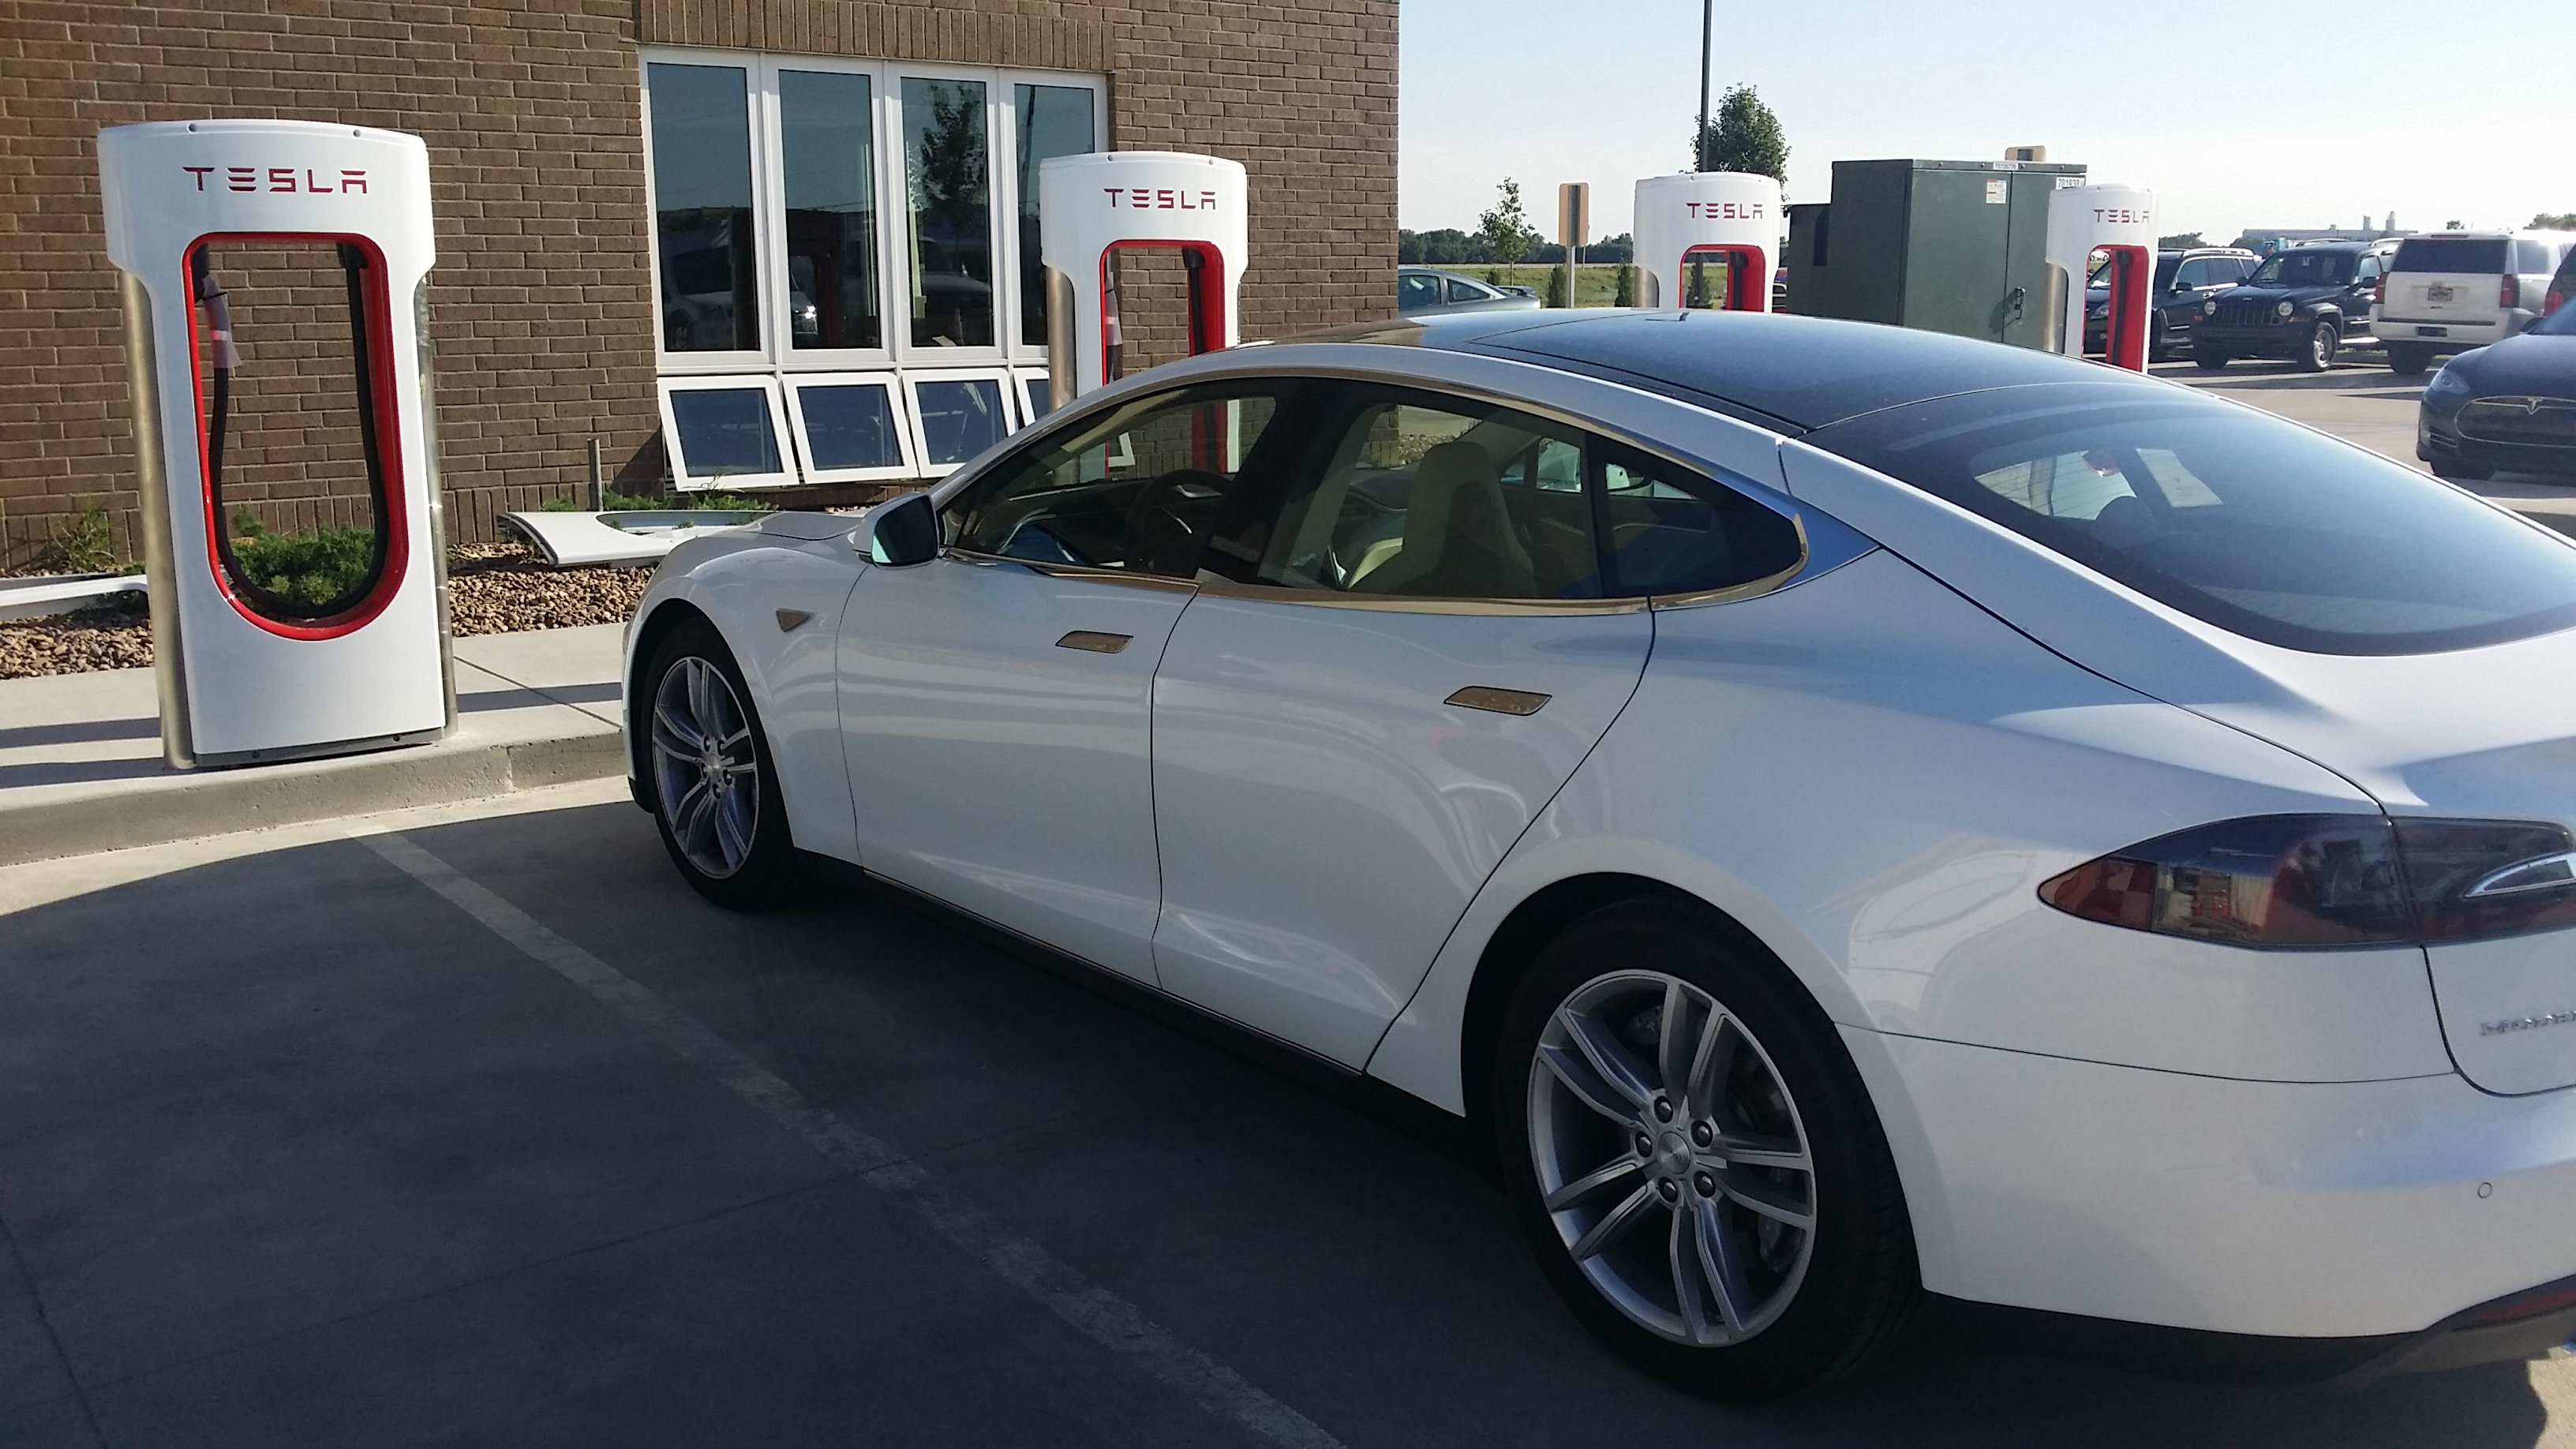 More Tesla Service Centers To Open Auto Electrical Wiring Diagram Unitrol Tm4 Installs Charging Stations In Salina